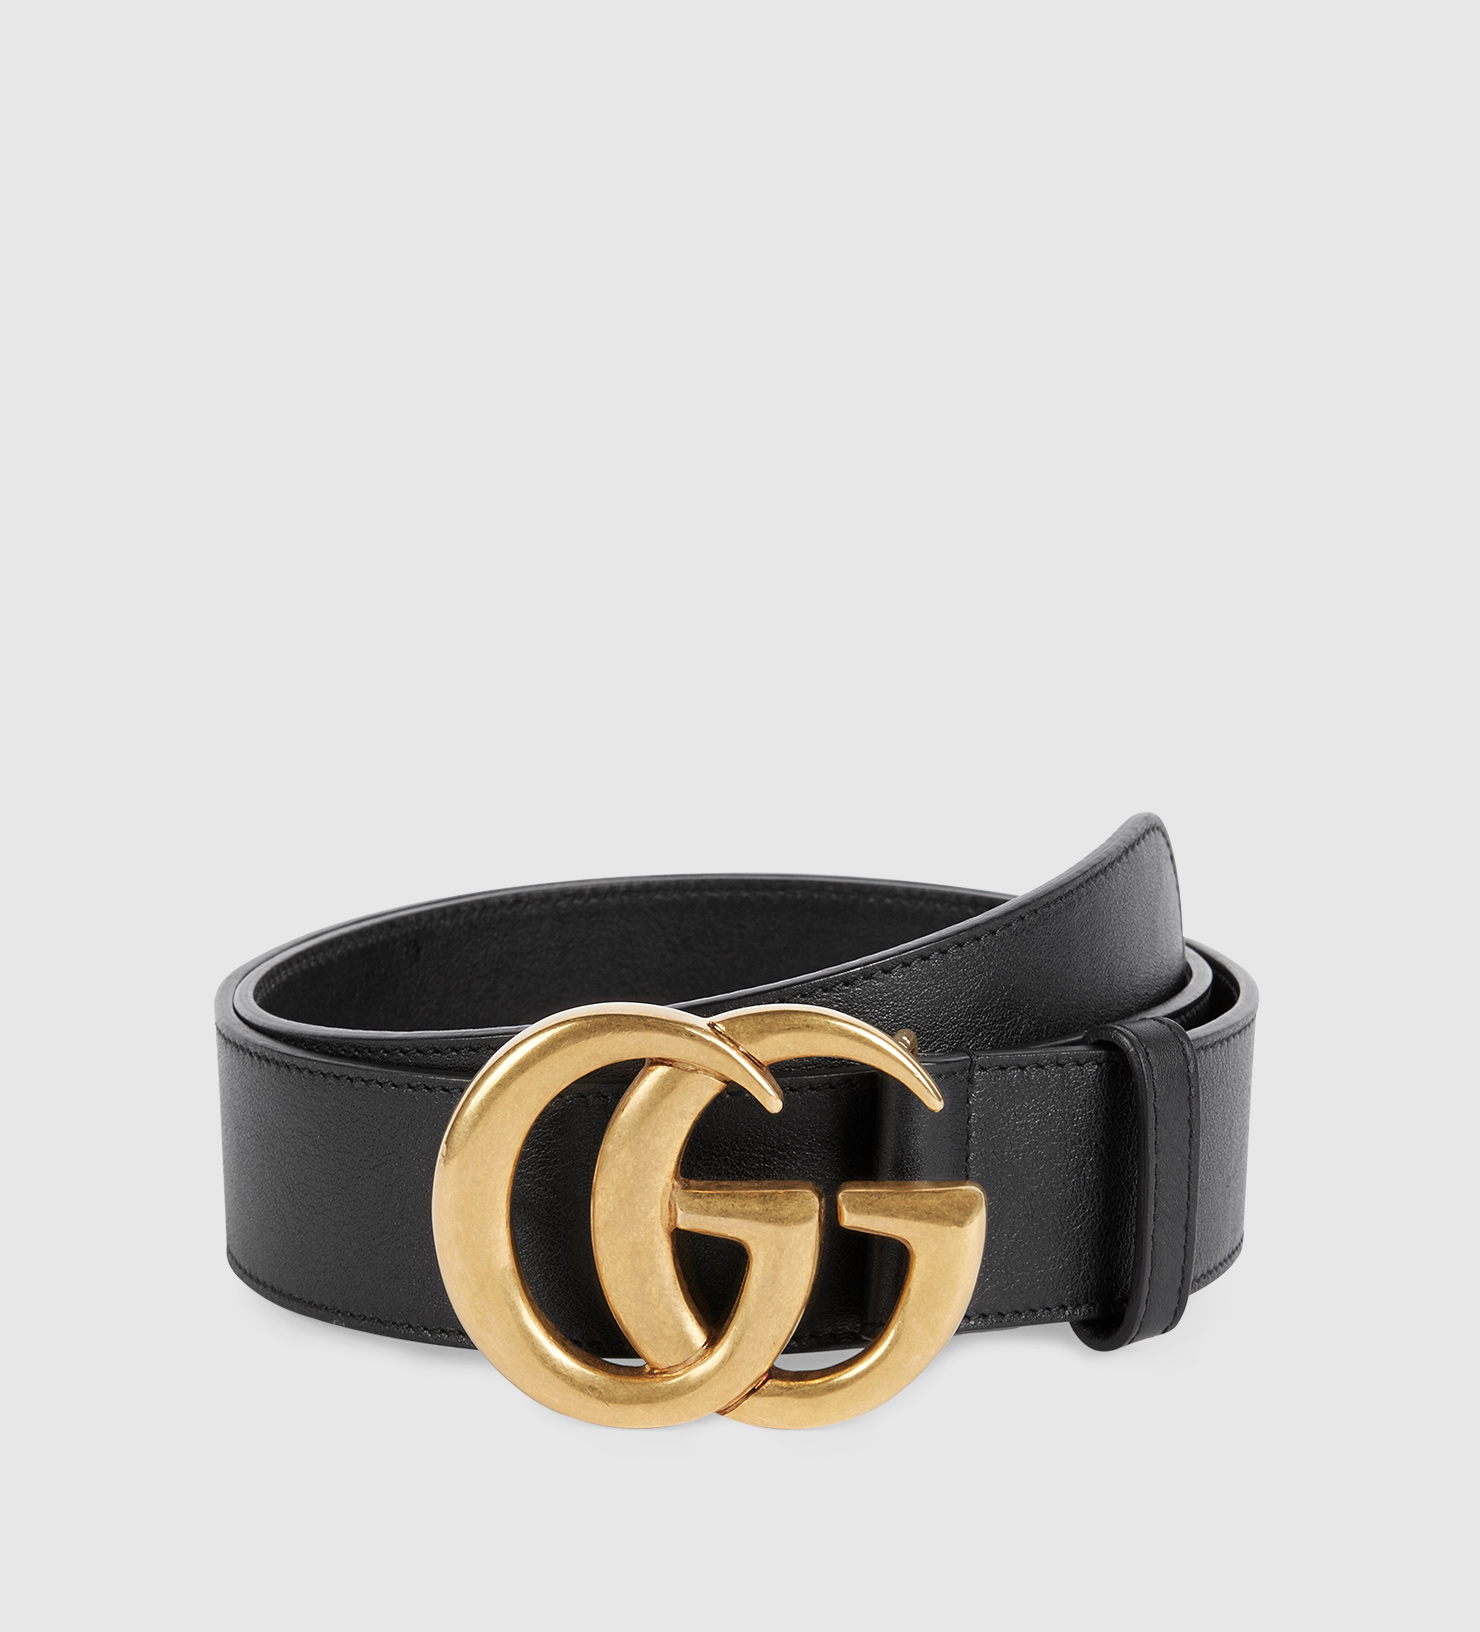 bdf7edfcd603c Lyst - Gucci Leather Belt With Double G Buckle in Black for Men